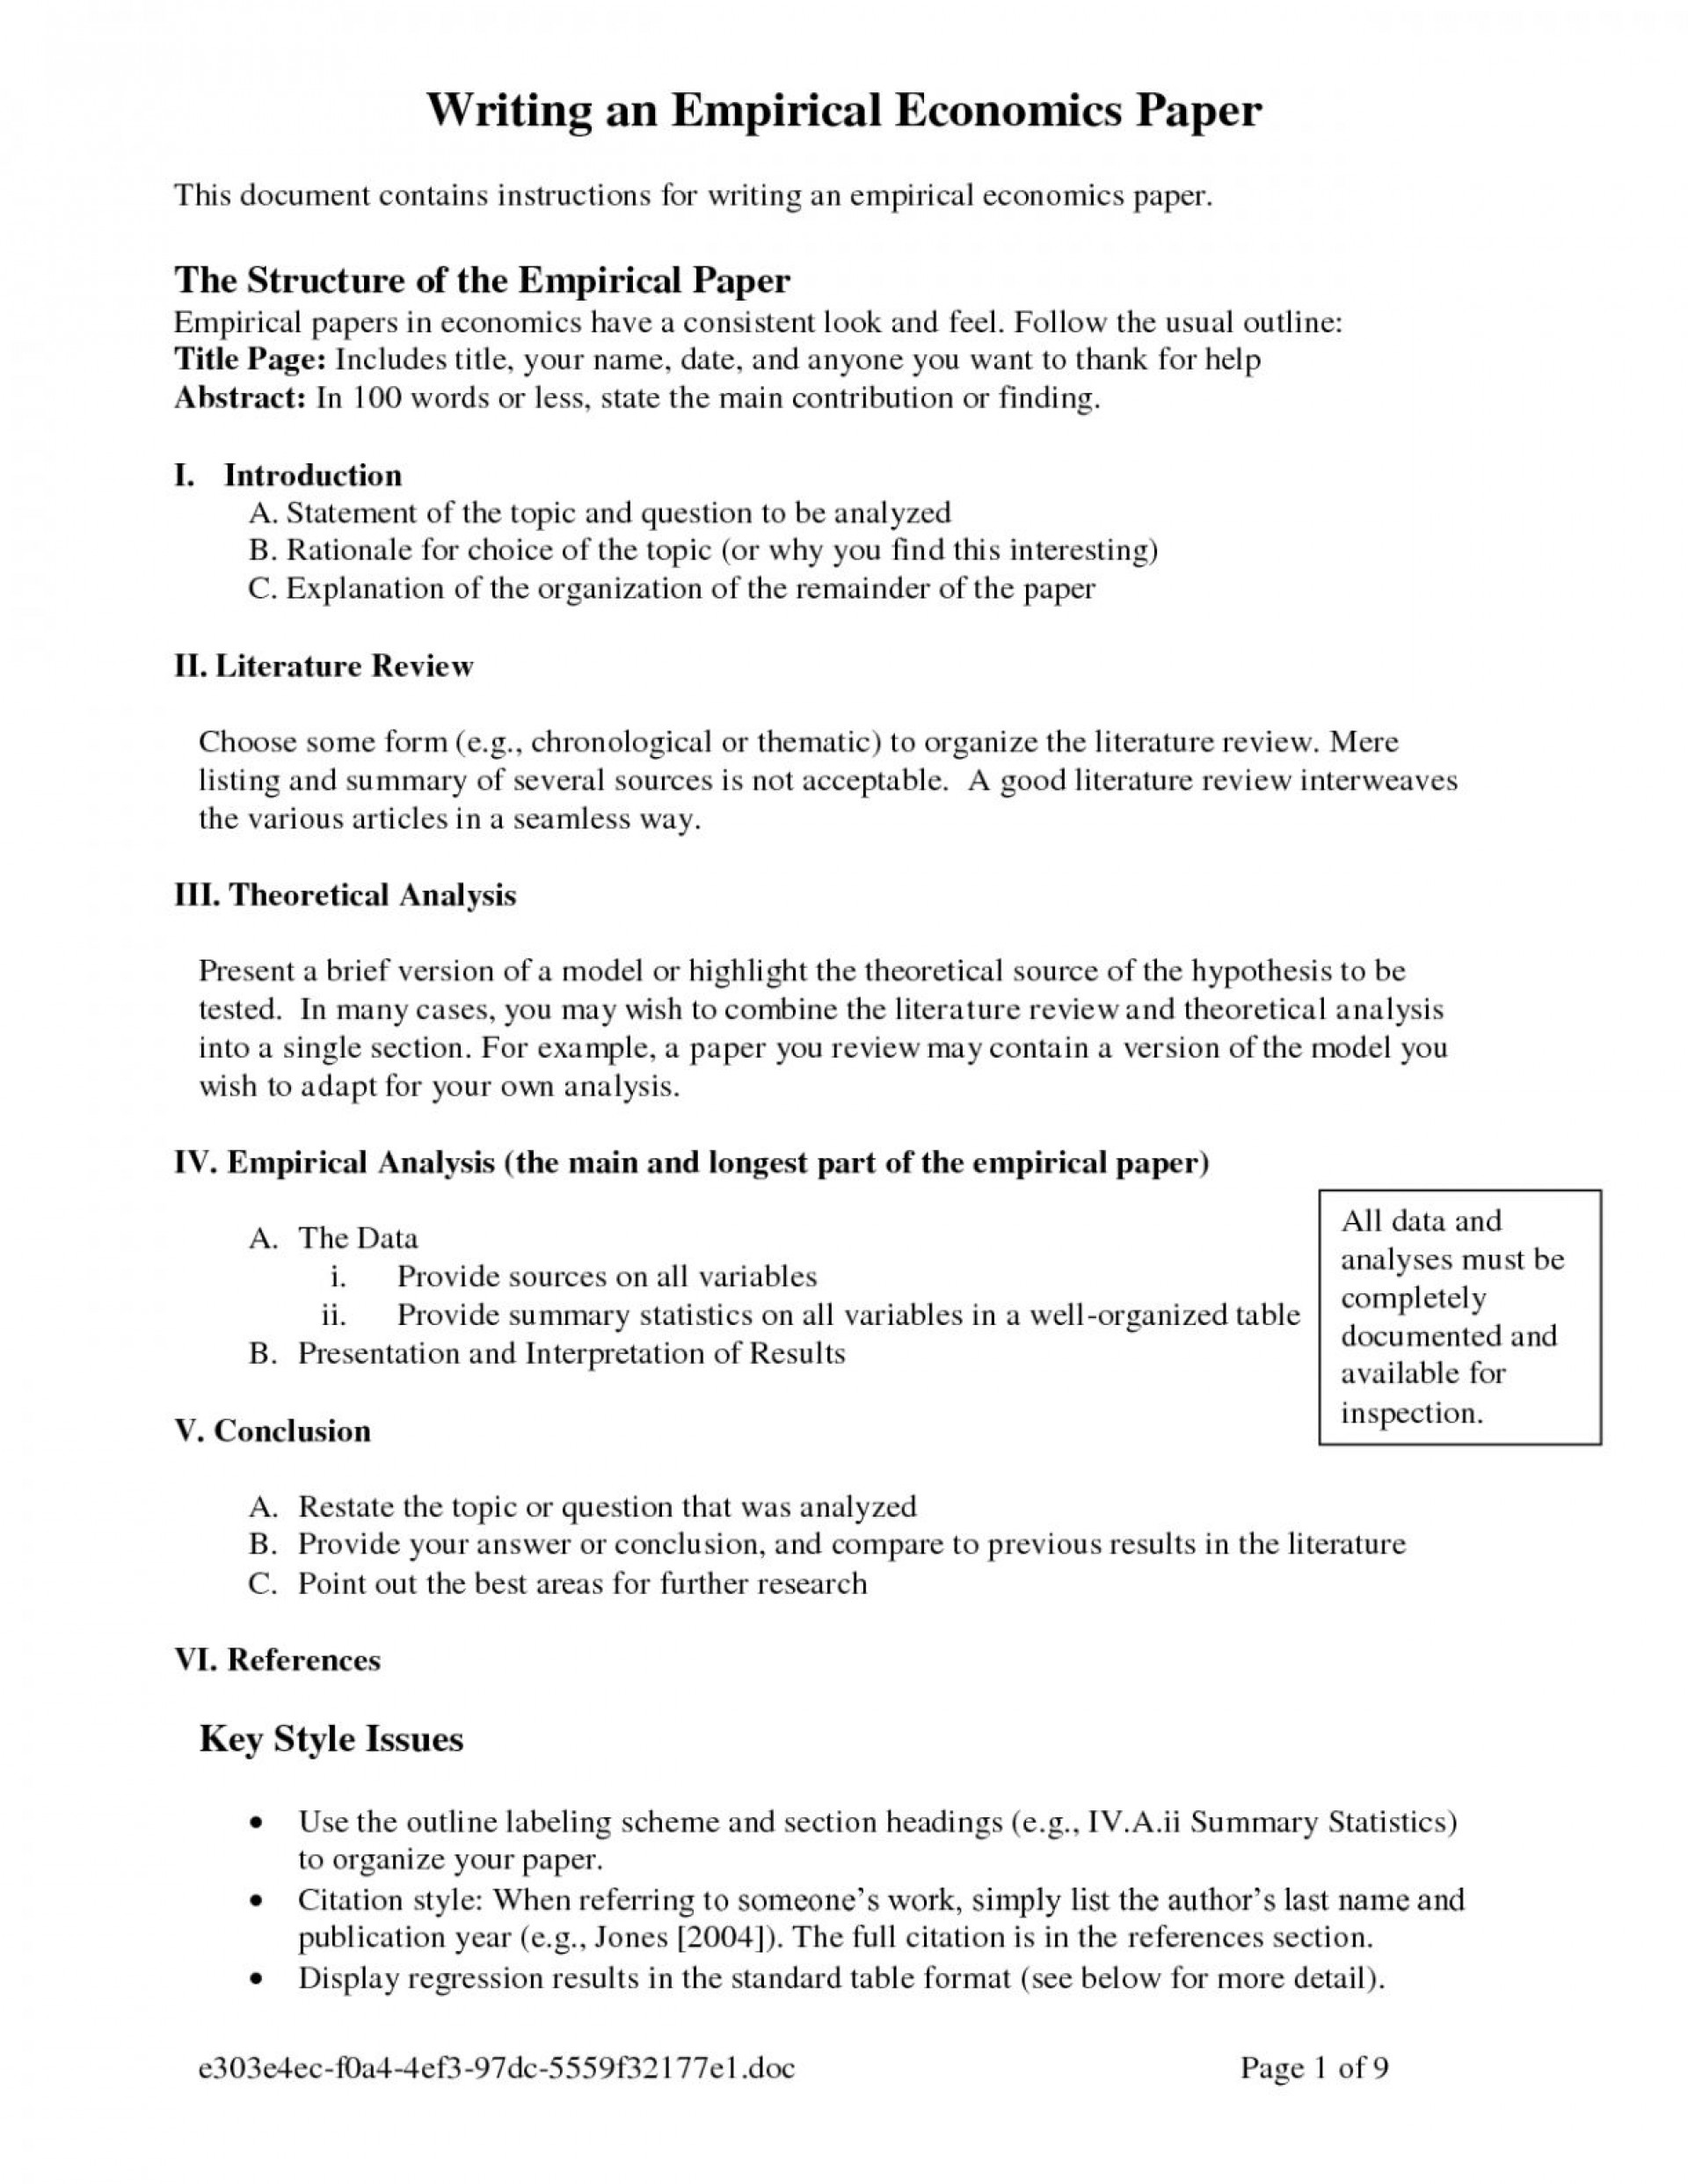 017 Research Paper Format For Apa Style Dissertationple Essay Papers Proposal Methods Section Custom Lovely Top A Sample Outline Introduction - Template 1920